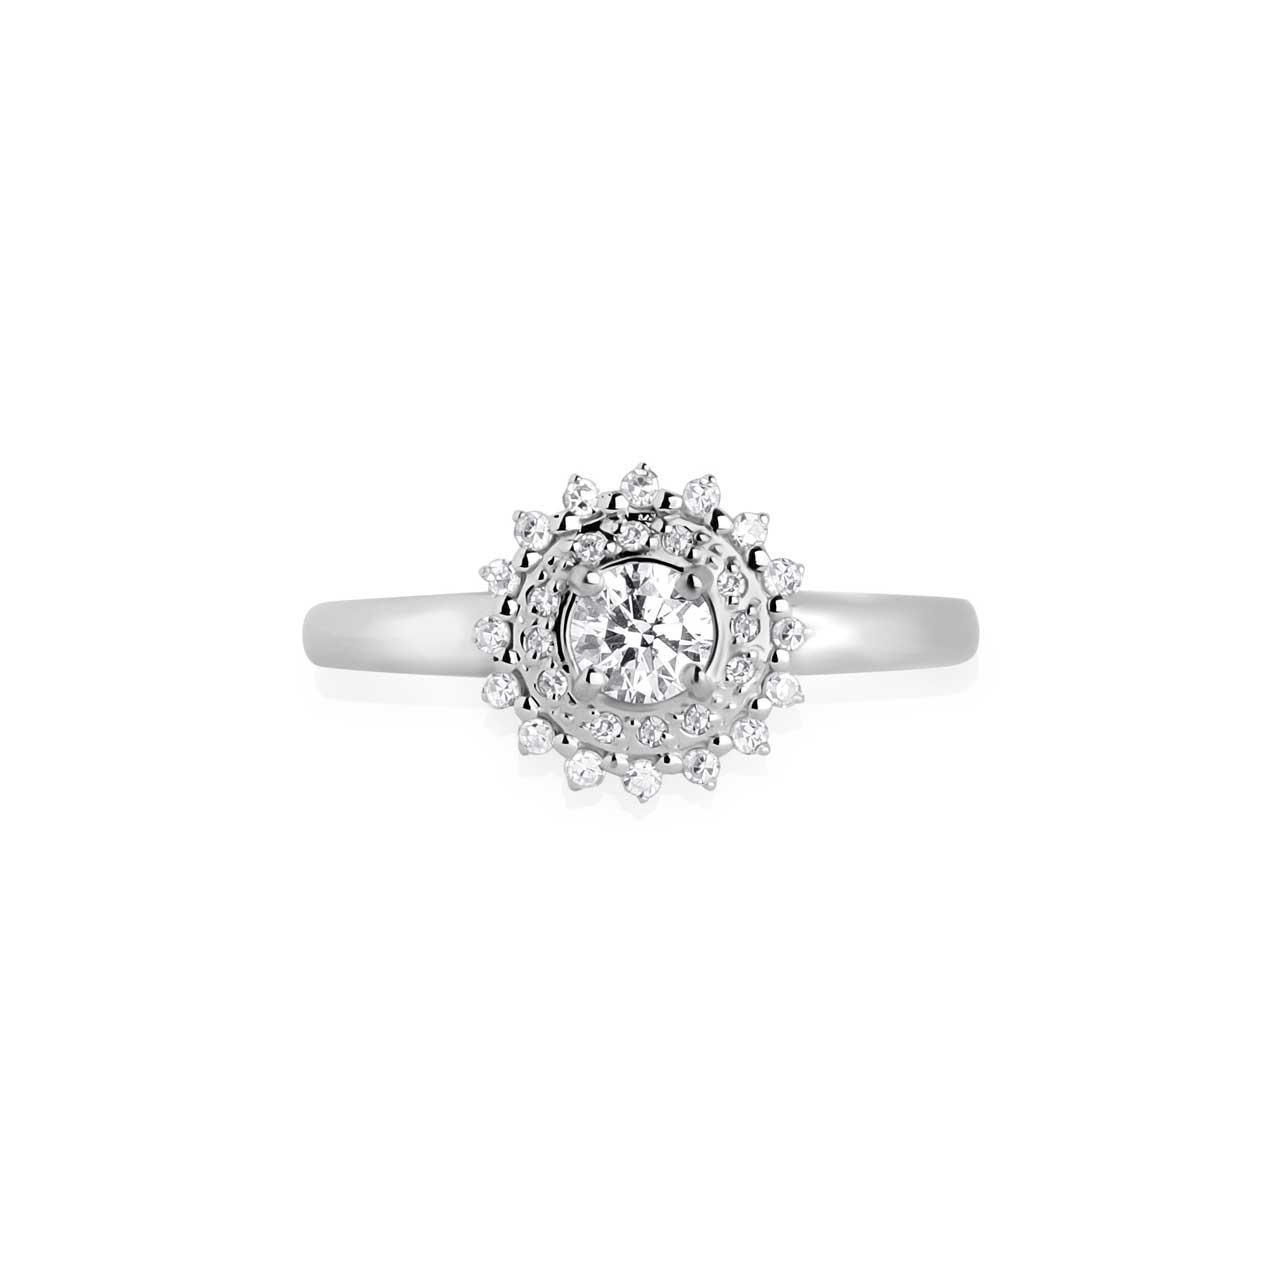 Hypoallergenic nickel-free 14K white gold diamond double halo ring. View 2